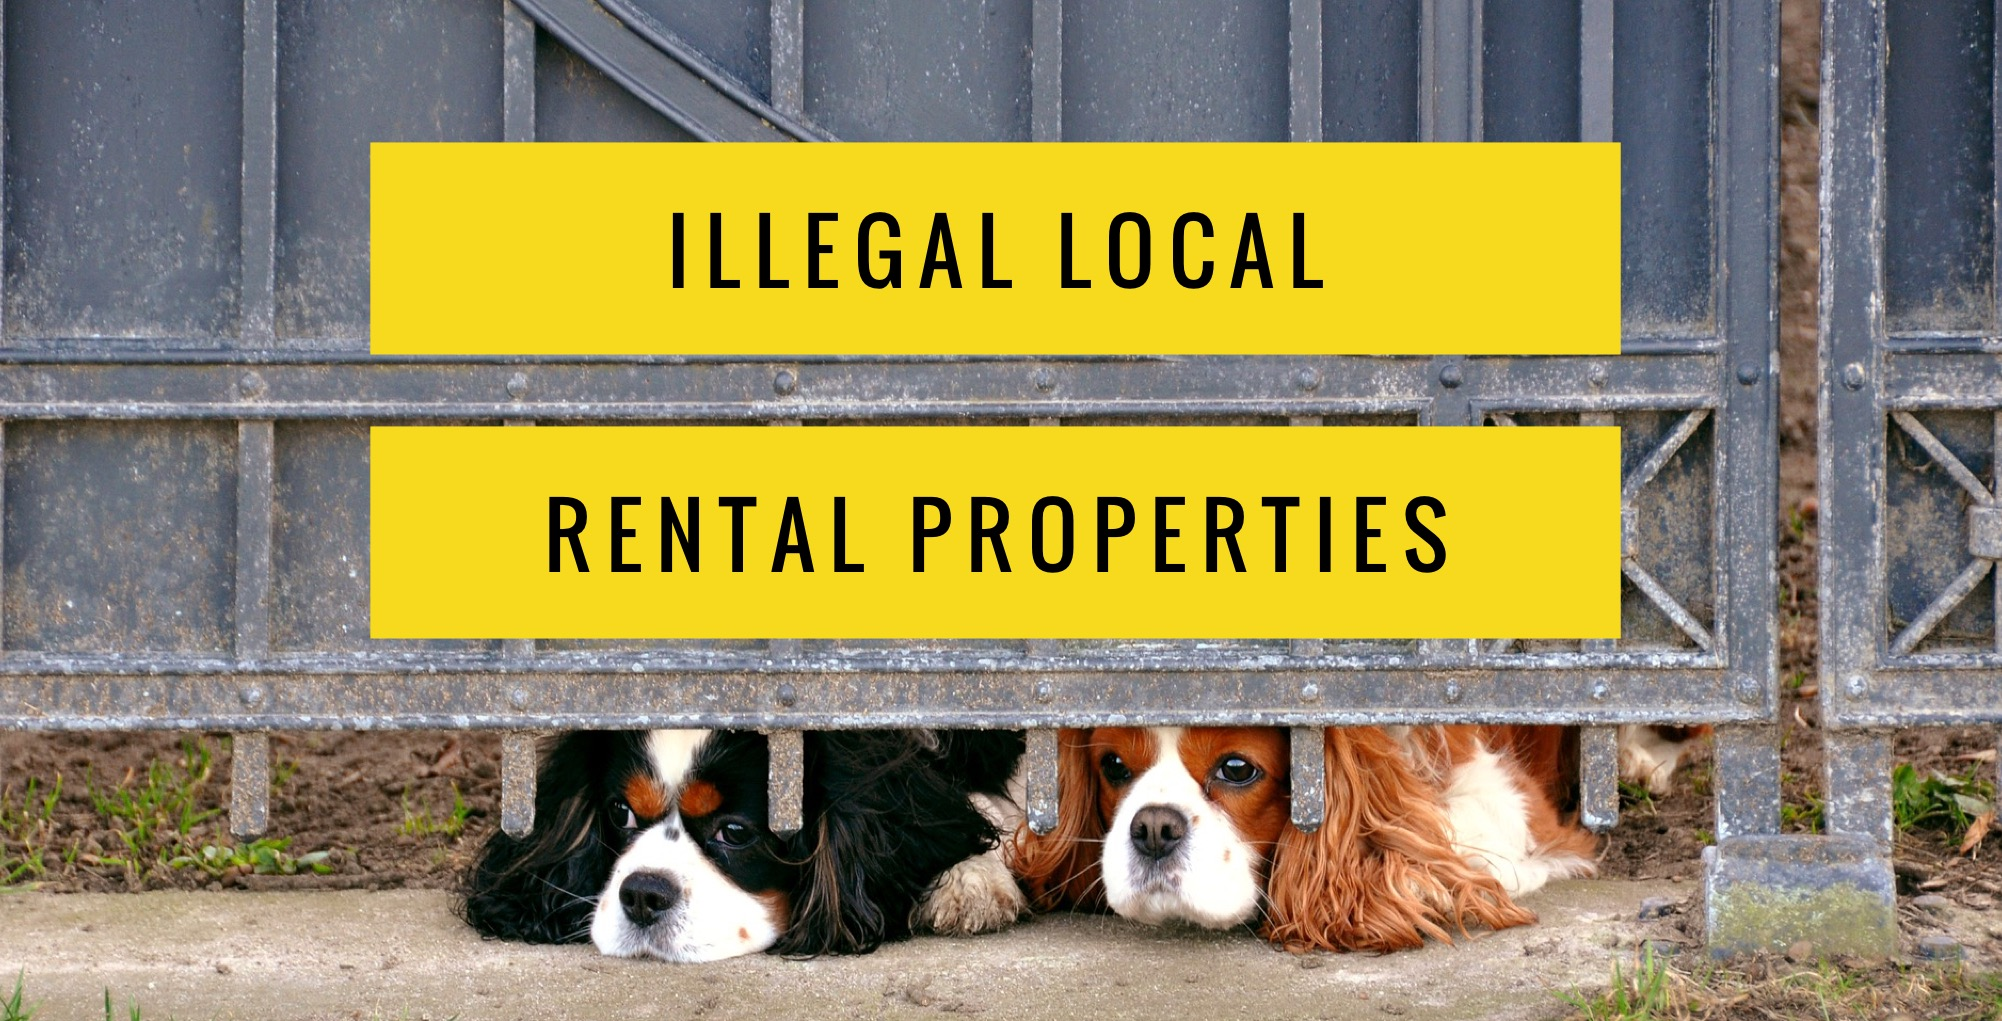 One in 22 rental properties in the Canterbury area will be illegal in 2018